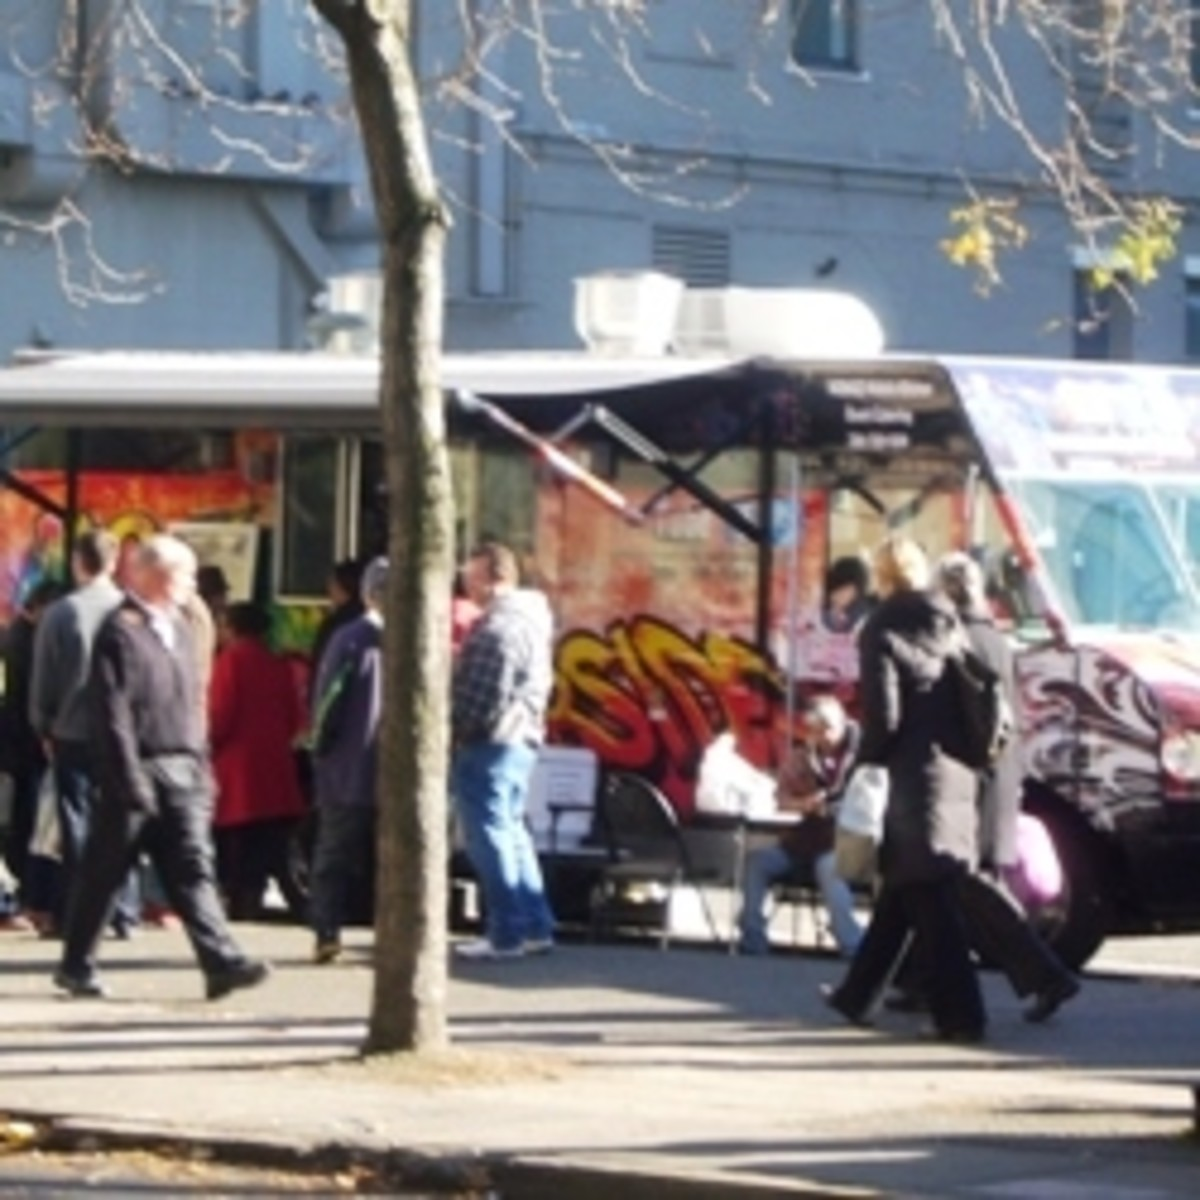 Nomad Curbside Food Truck in Seattle